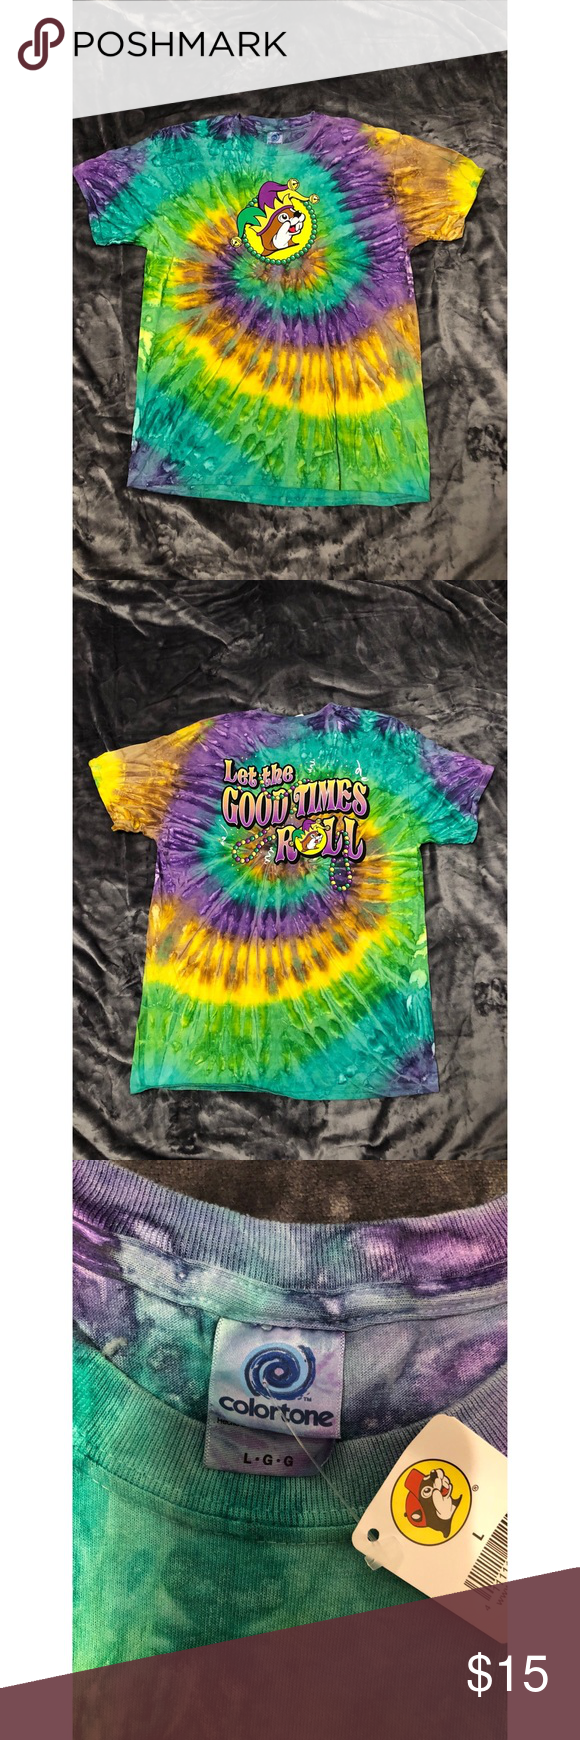 799b9b4aeeb5 Buc-ee's Mardi Gras Tie Die T-shirt ‼️NEVER WORN‼ Buc-ee's Tie Dye Mardi  Gras T-shirt size Large Buc-ee's is a famous truck stop here in Texas You  can't ...